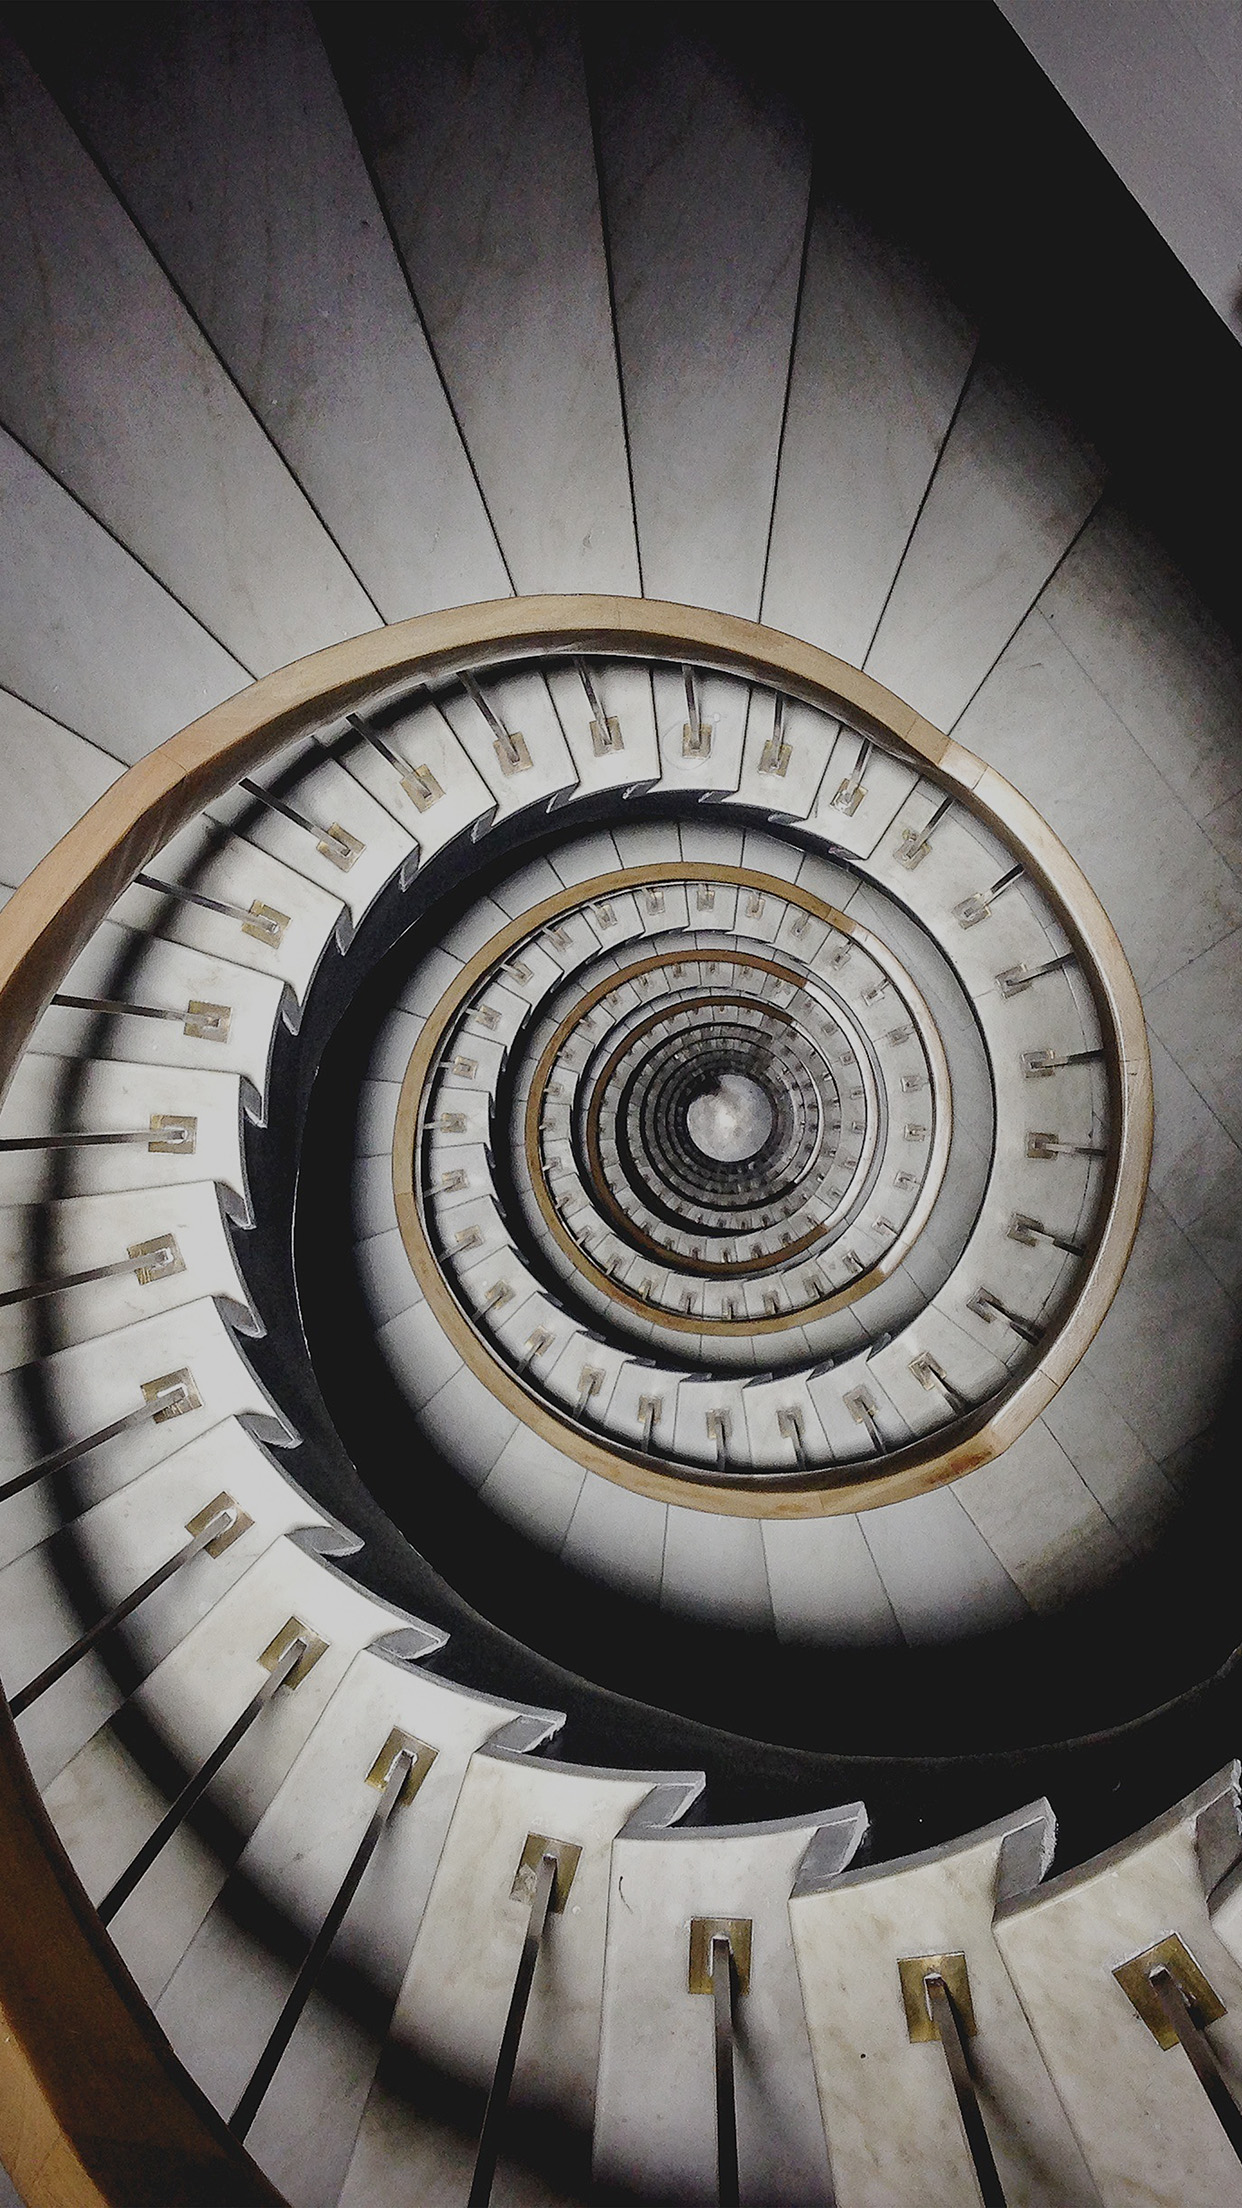 Iphone6papers Co Iphone 6 Wallpaper Vo42 Spiral Stair